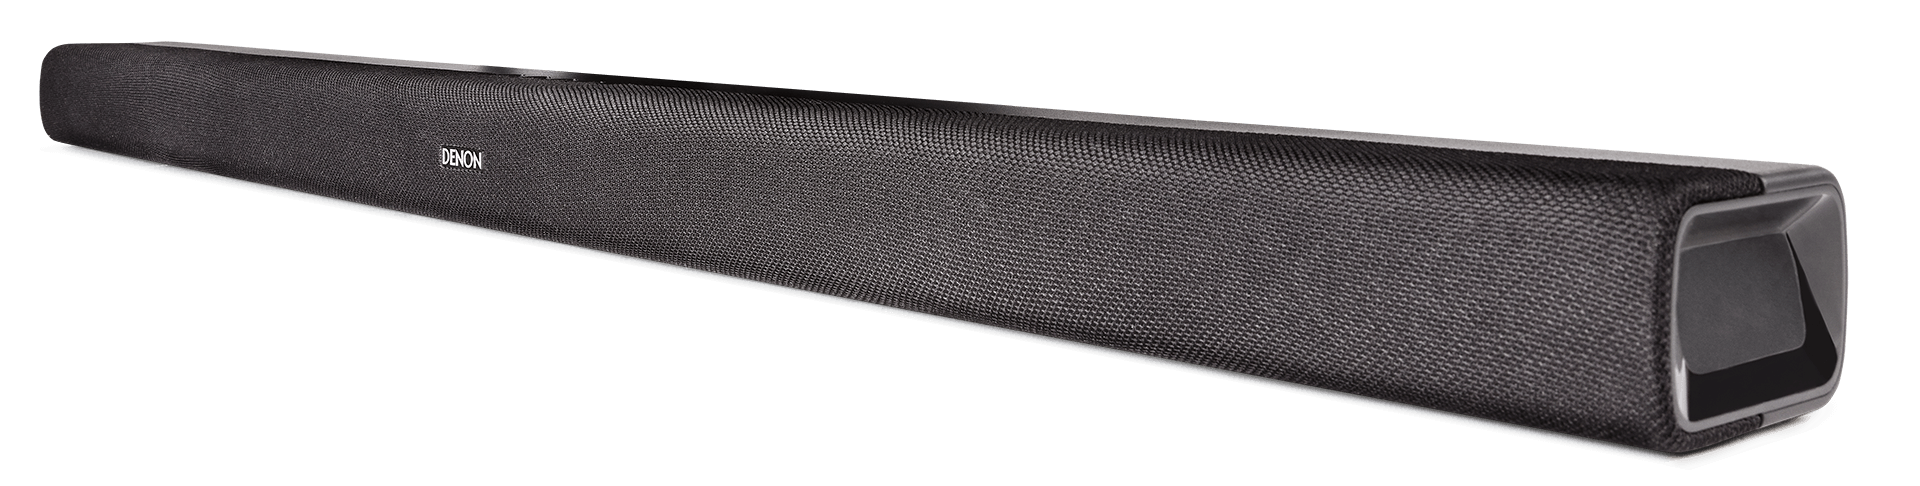 Loa sound bar DENON DHT-S316 | HayAudio.com